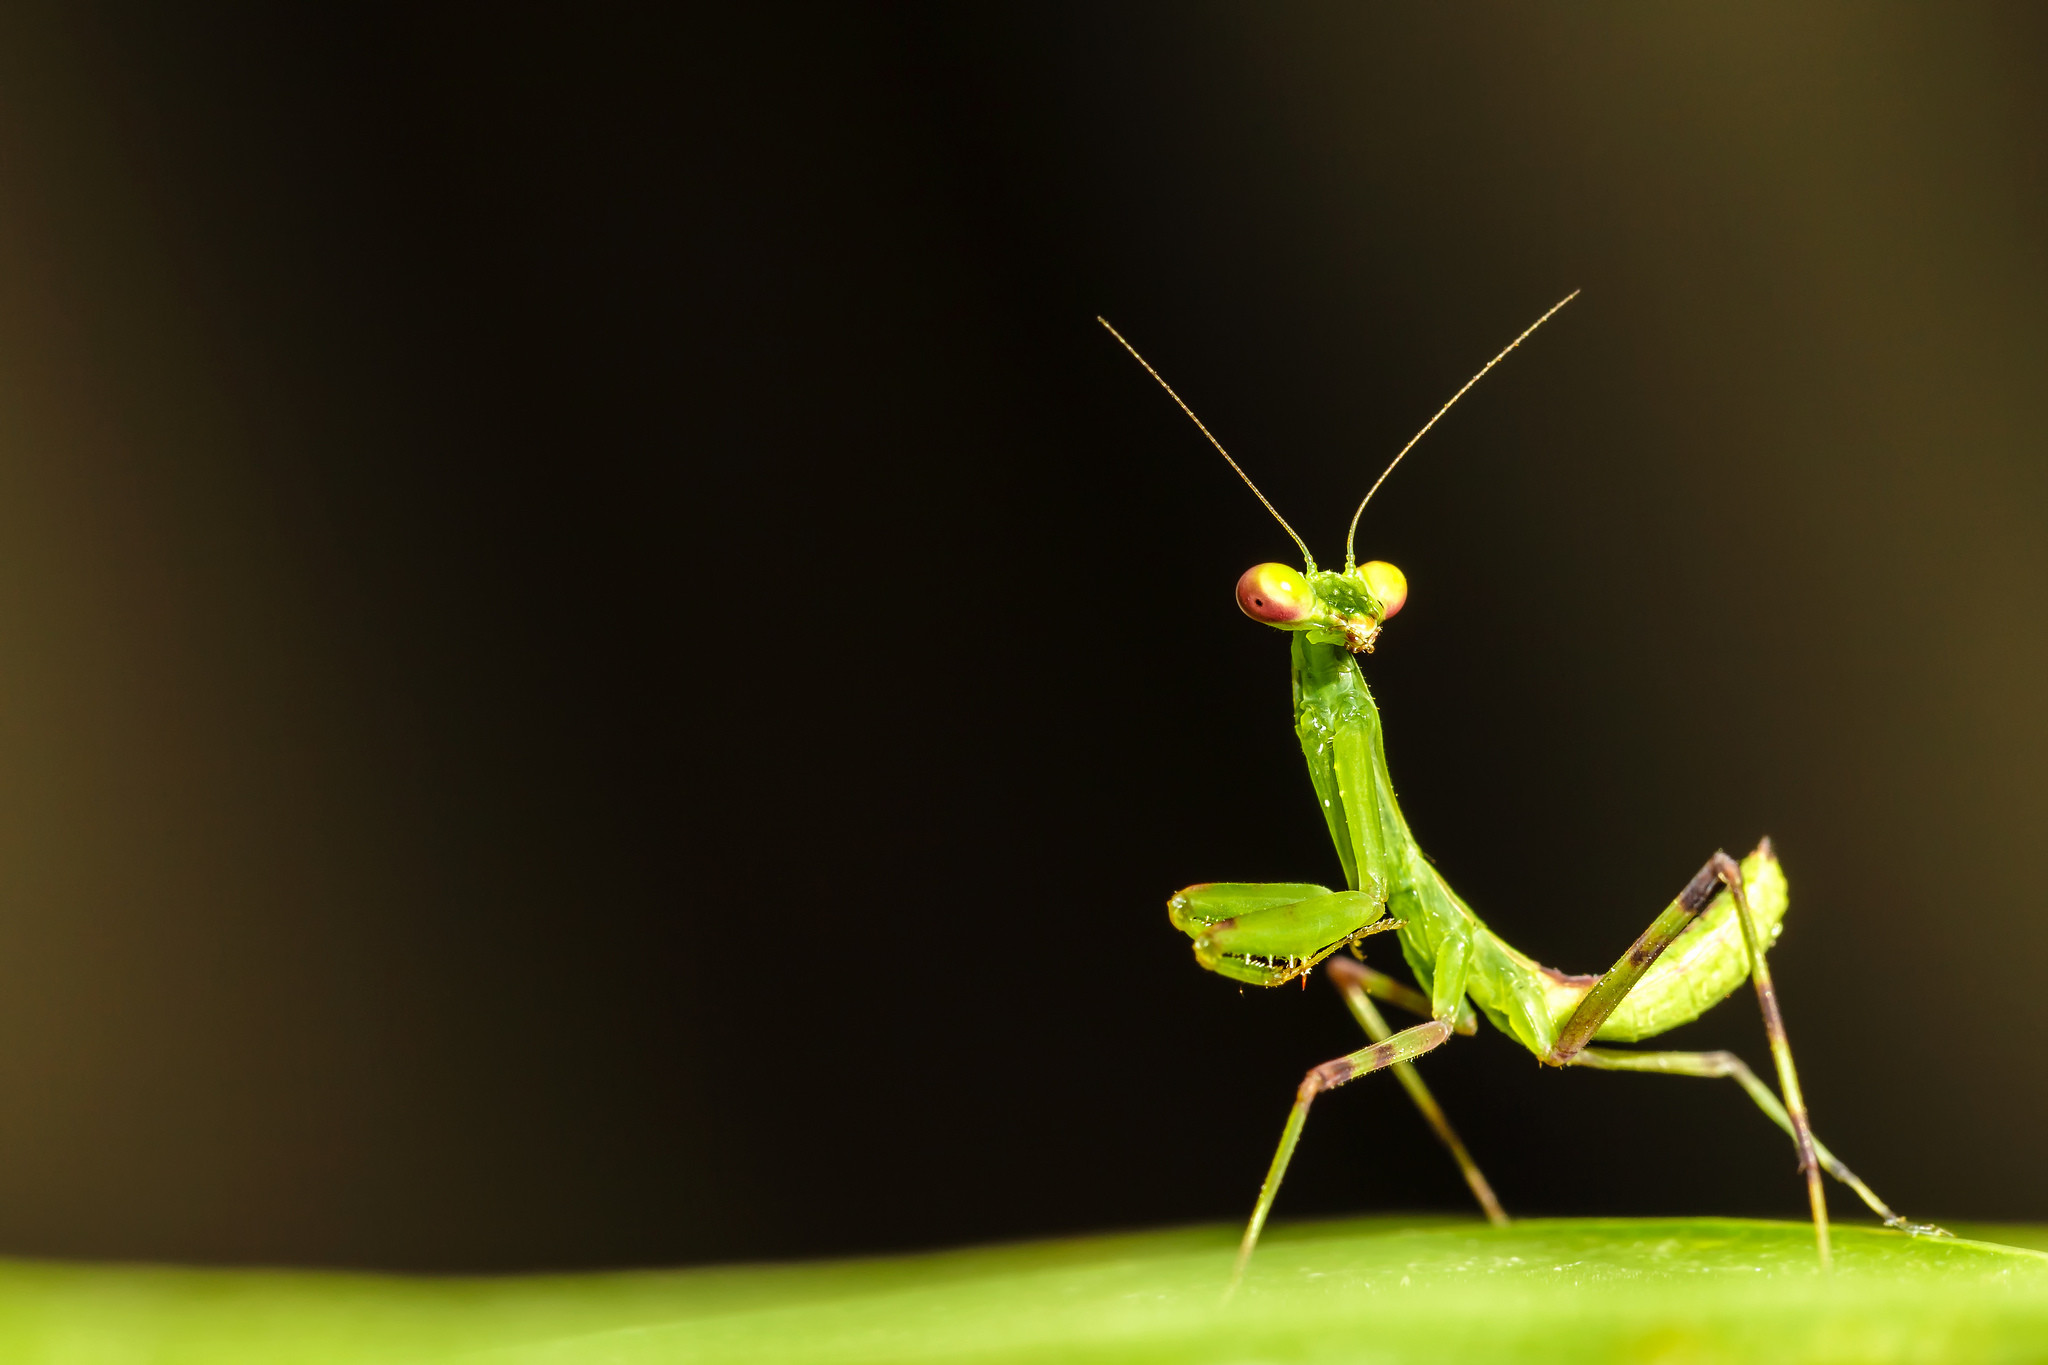 Res: 2048x1365, Praying Mantis Wallpaper 1